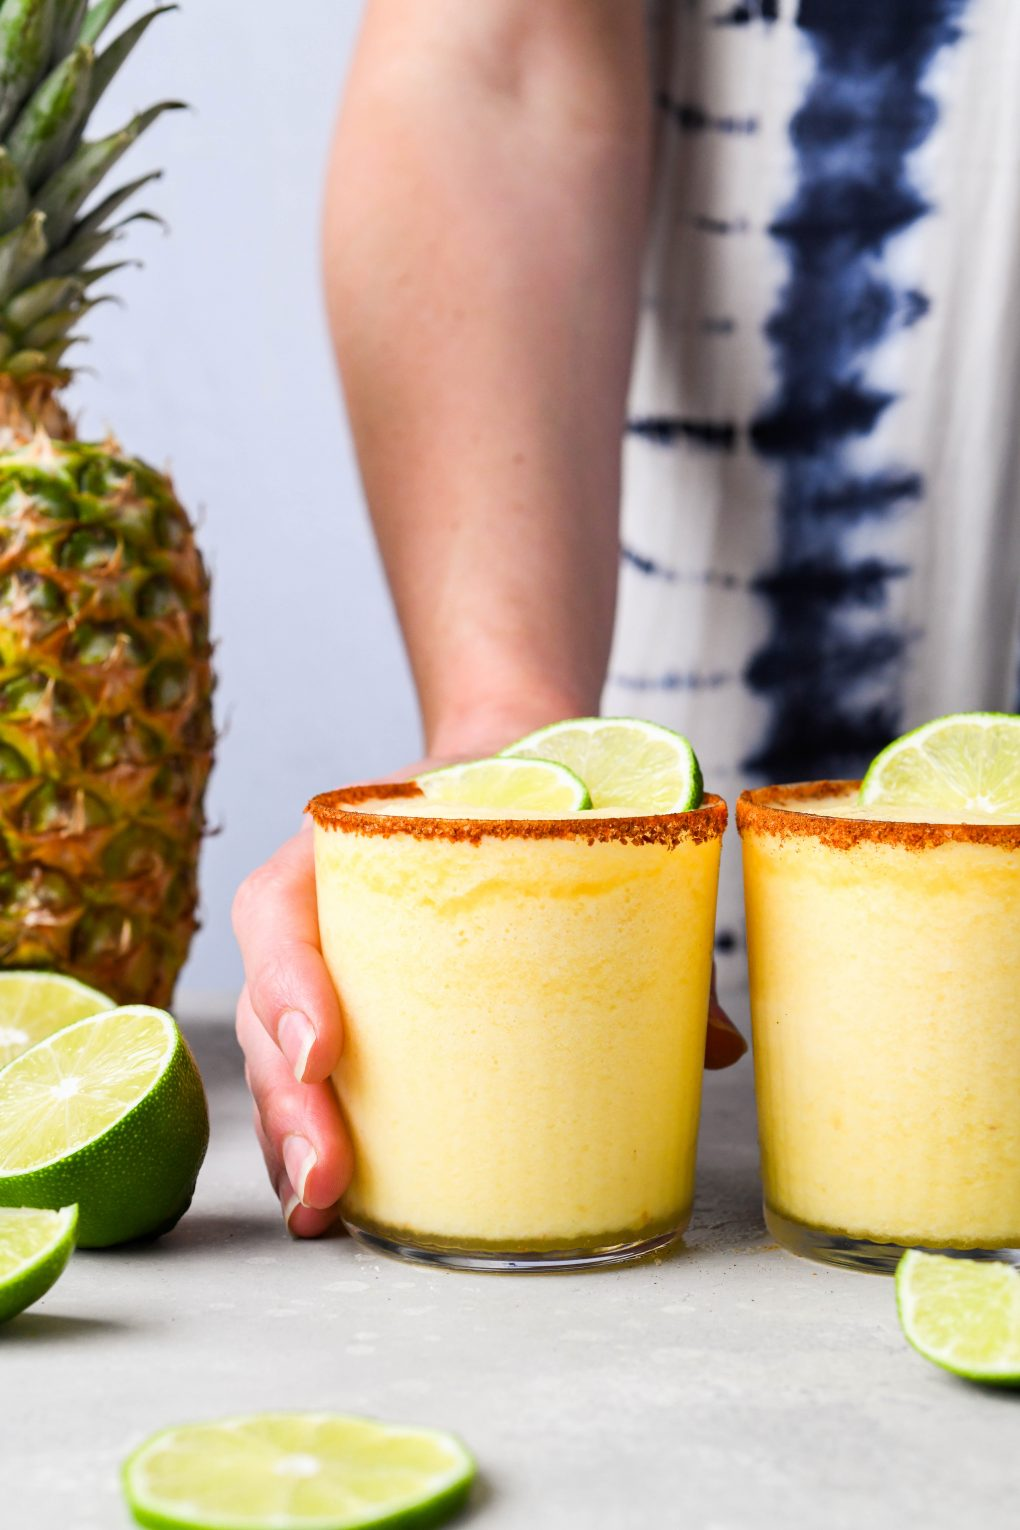 Hand reaching out and holding one of two side by side frozen pineapple margaritas. With a spiced chili rim, garnished with a few cut limes, and next to a fresh pineapple. On a light background.